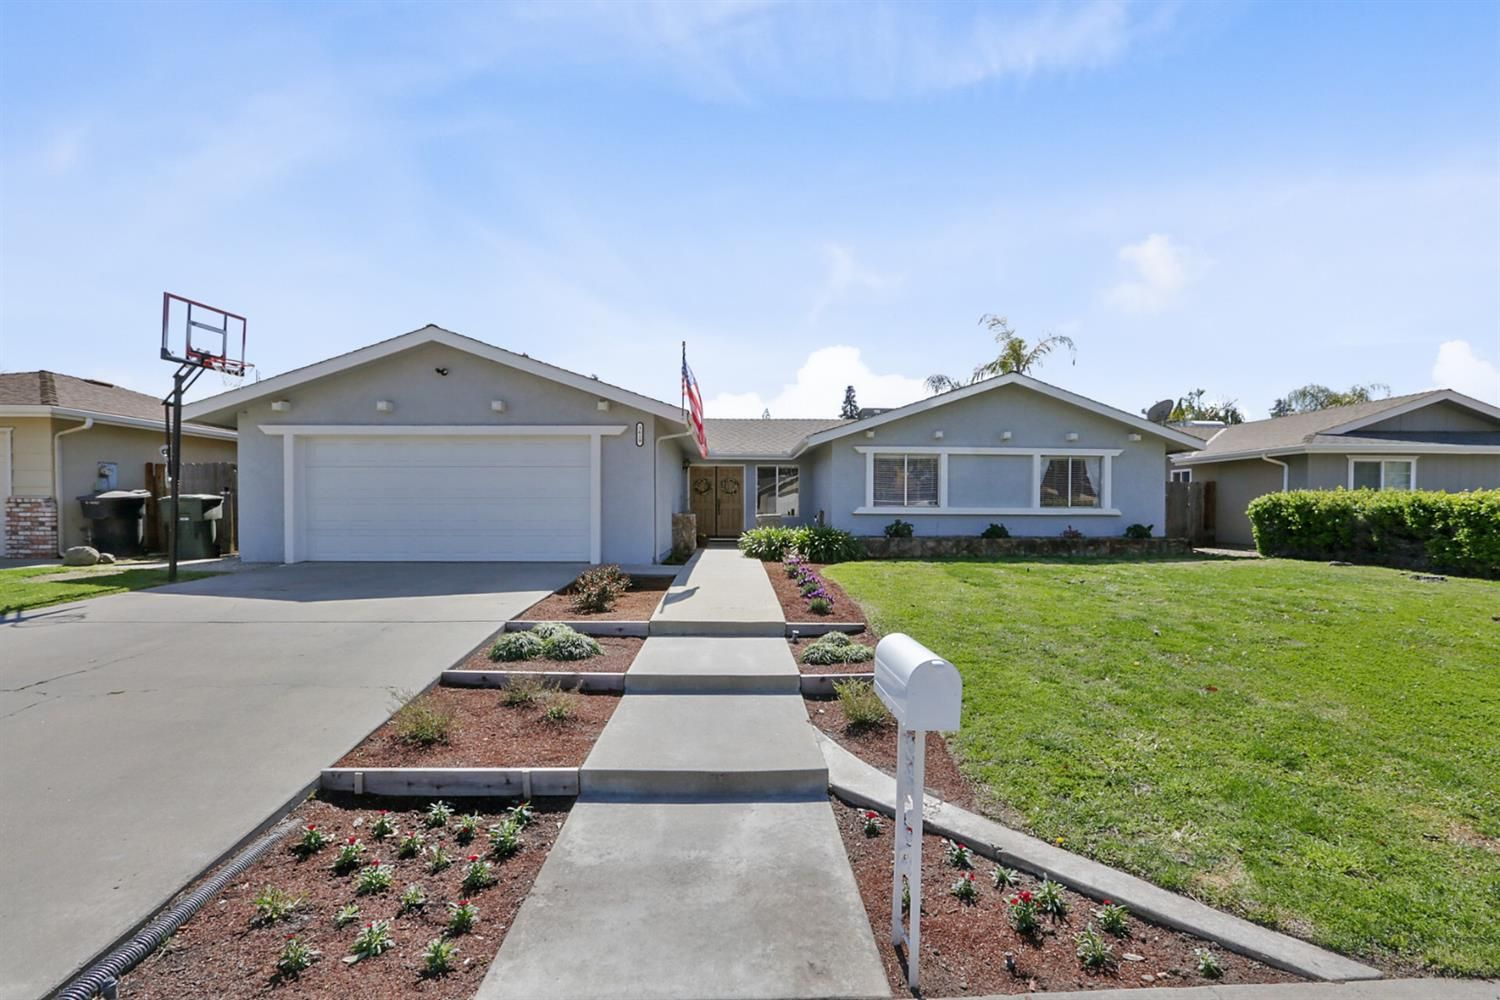 Home For Sale At 3619 W Cherry Ave Visalia Ca 93277 274 900